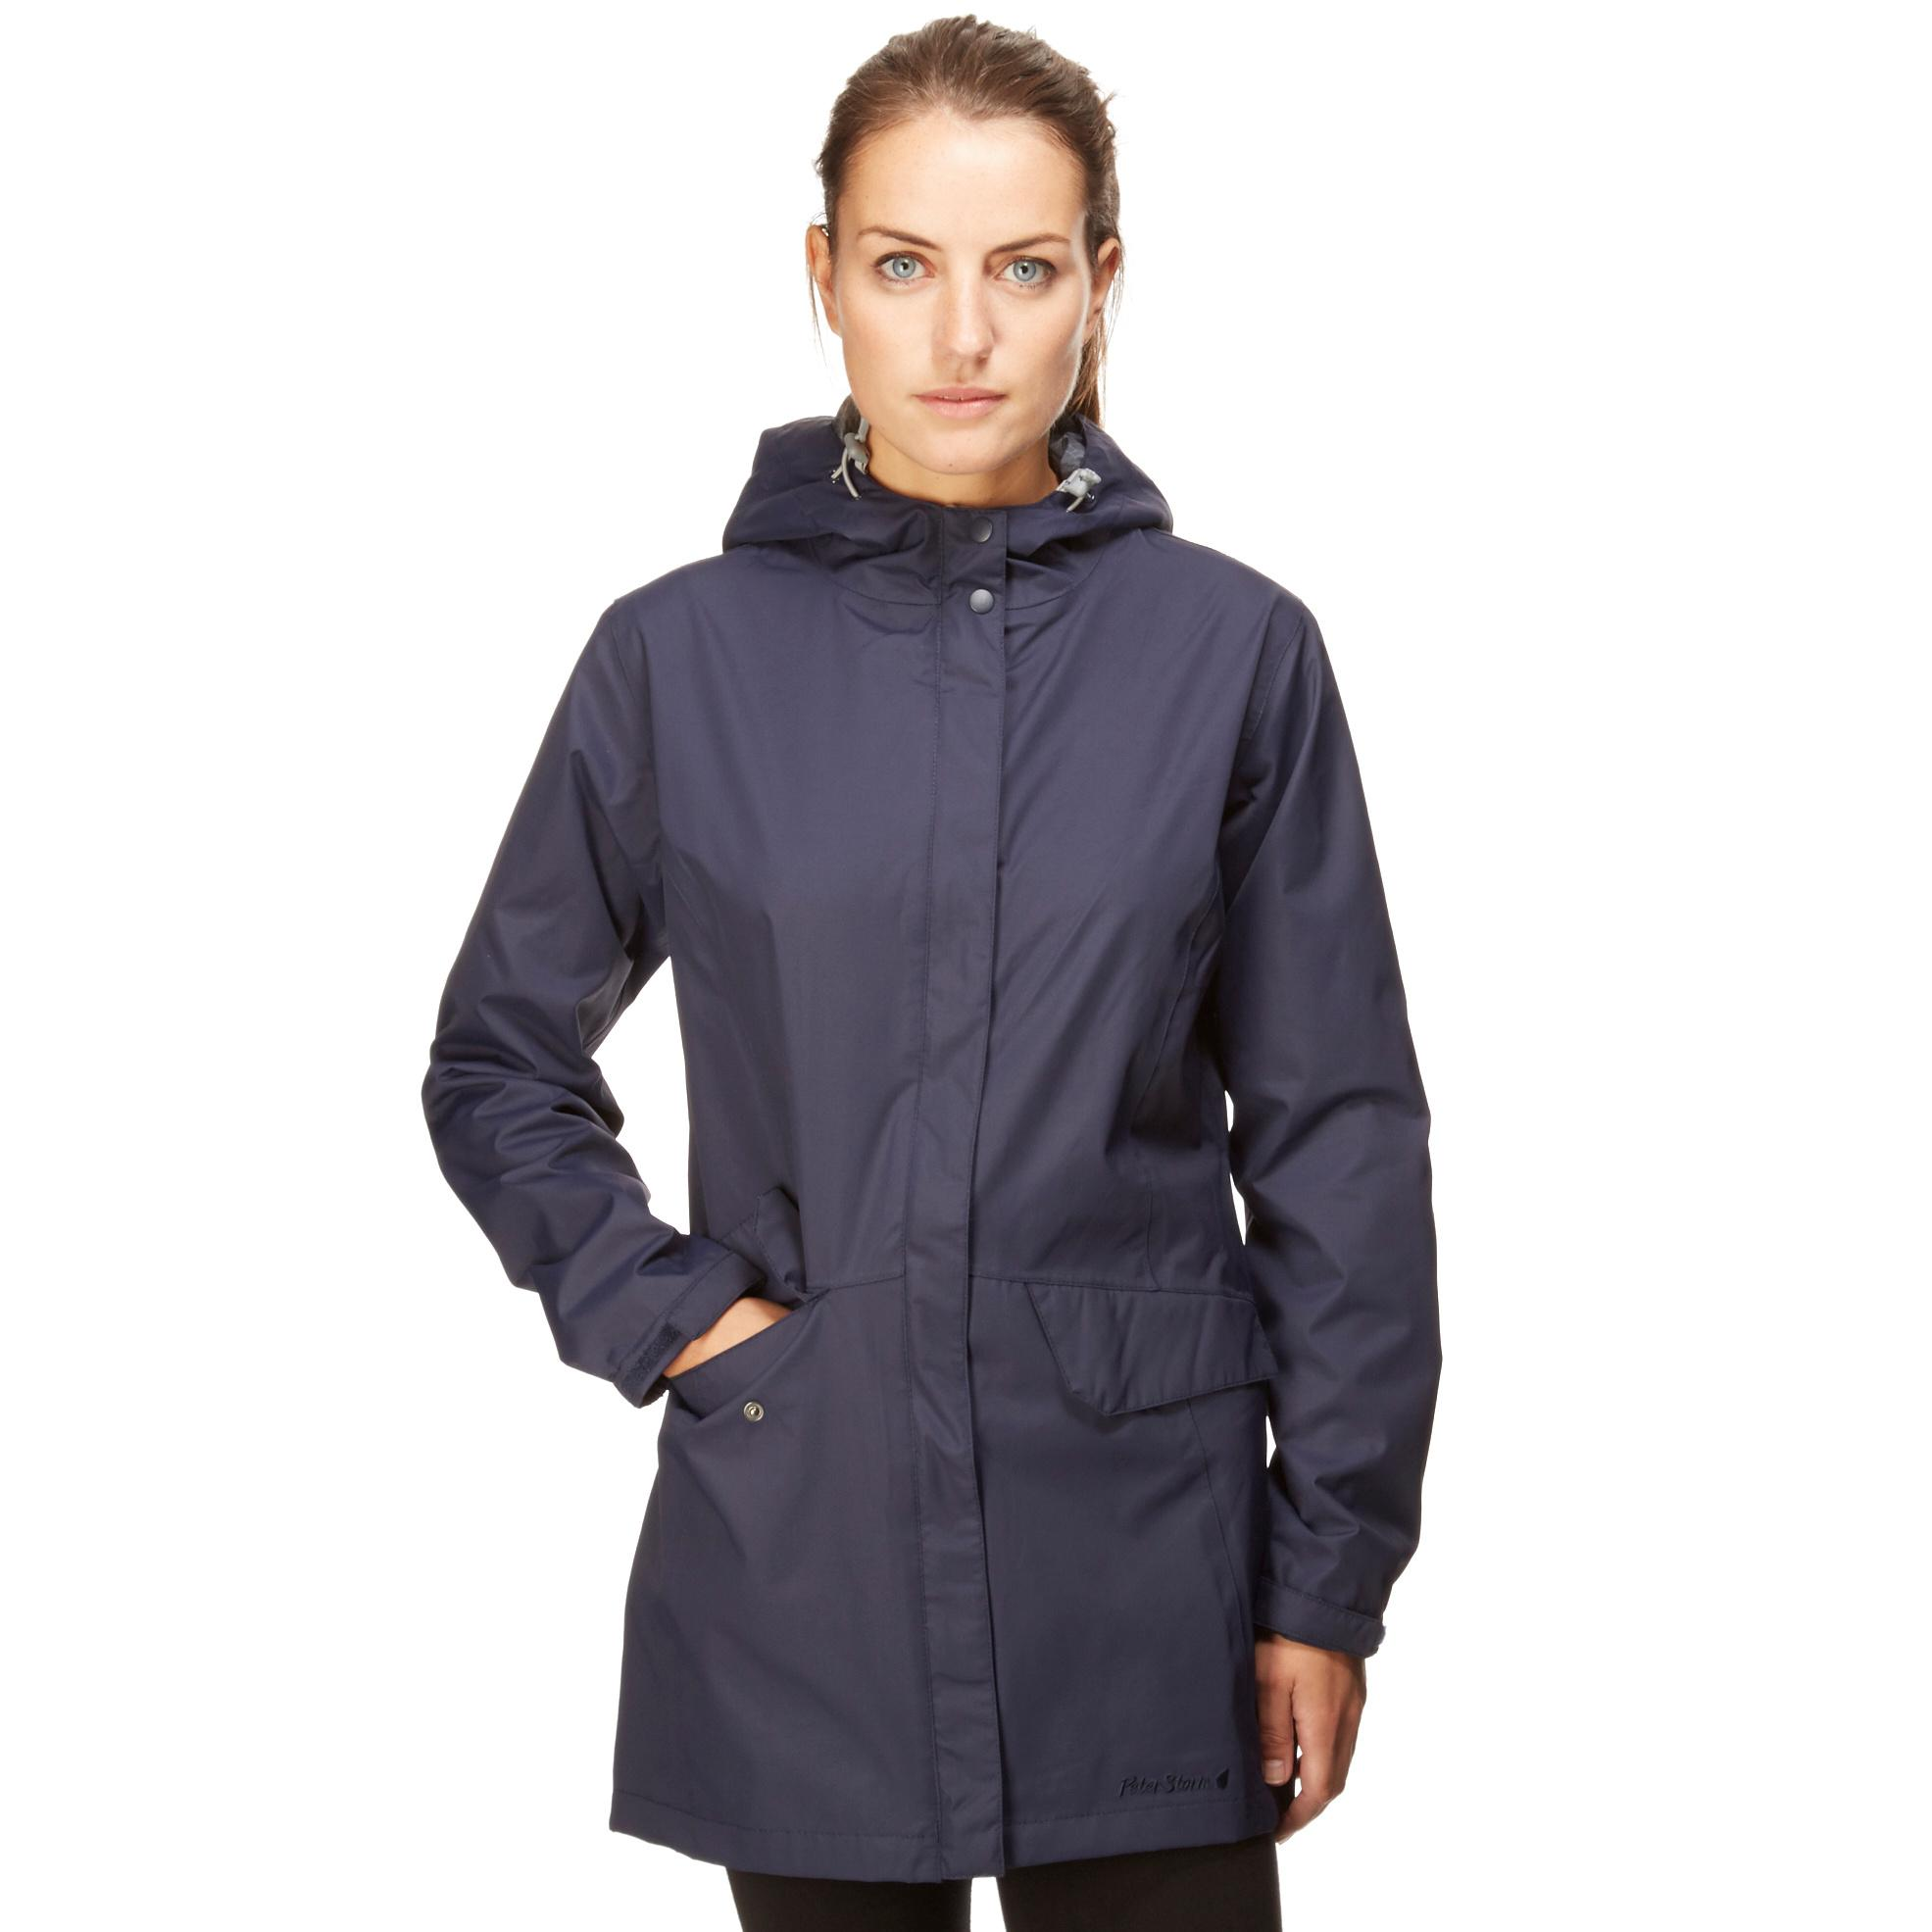 peter storm women s cyclone waterproof jacket #2: bl a